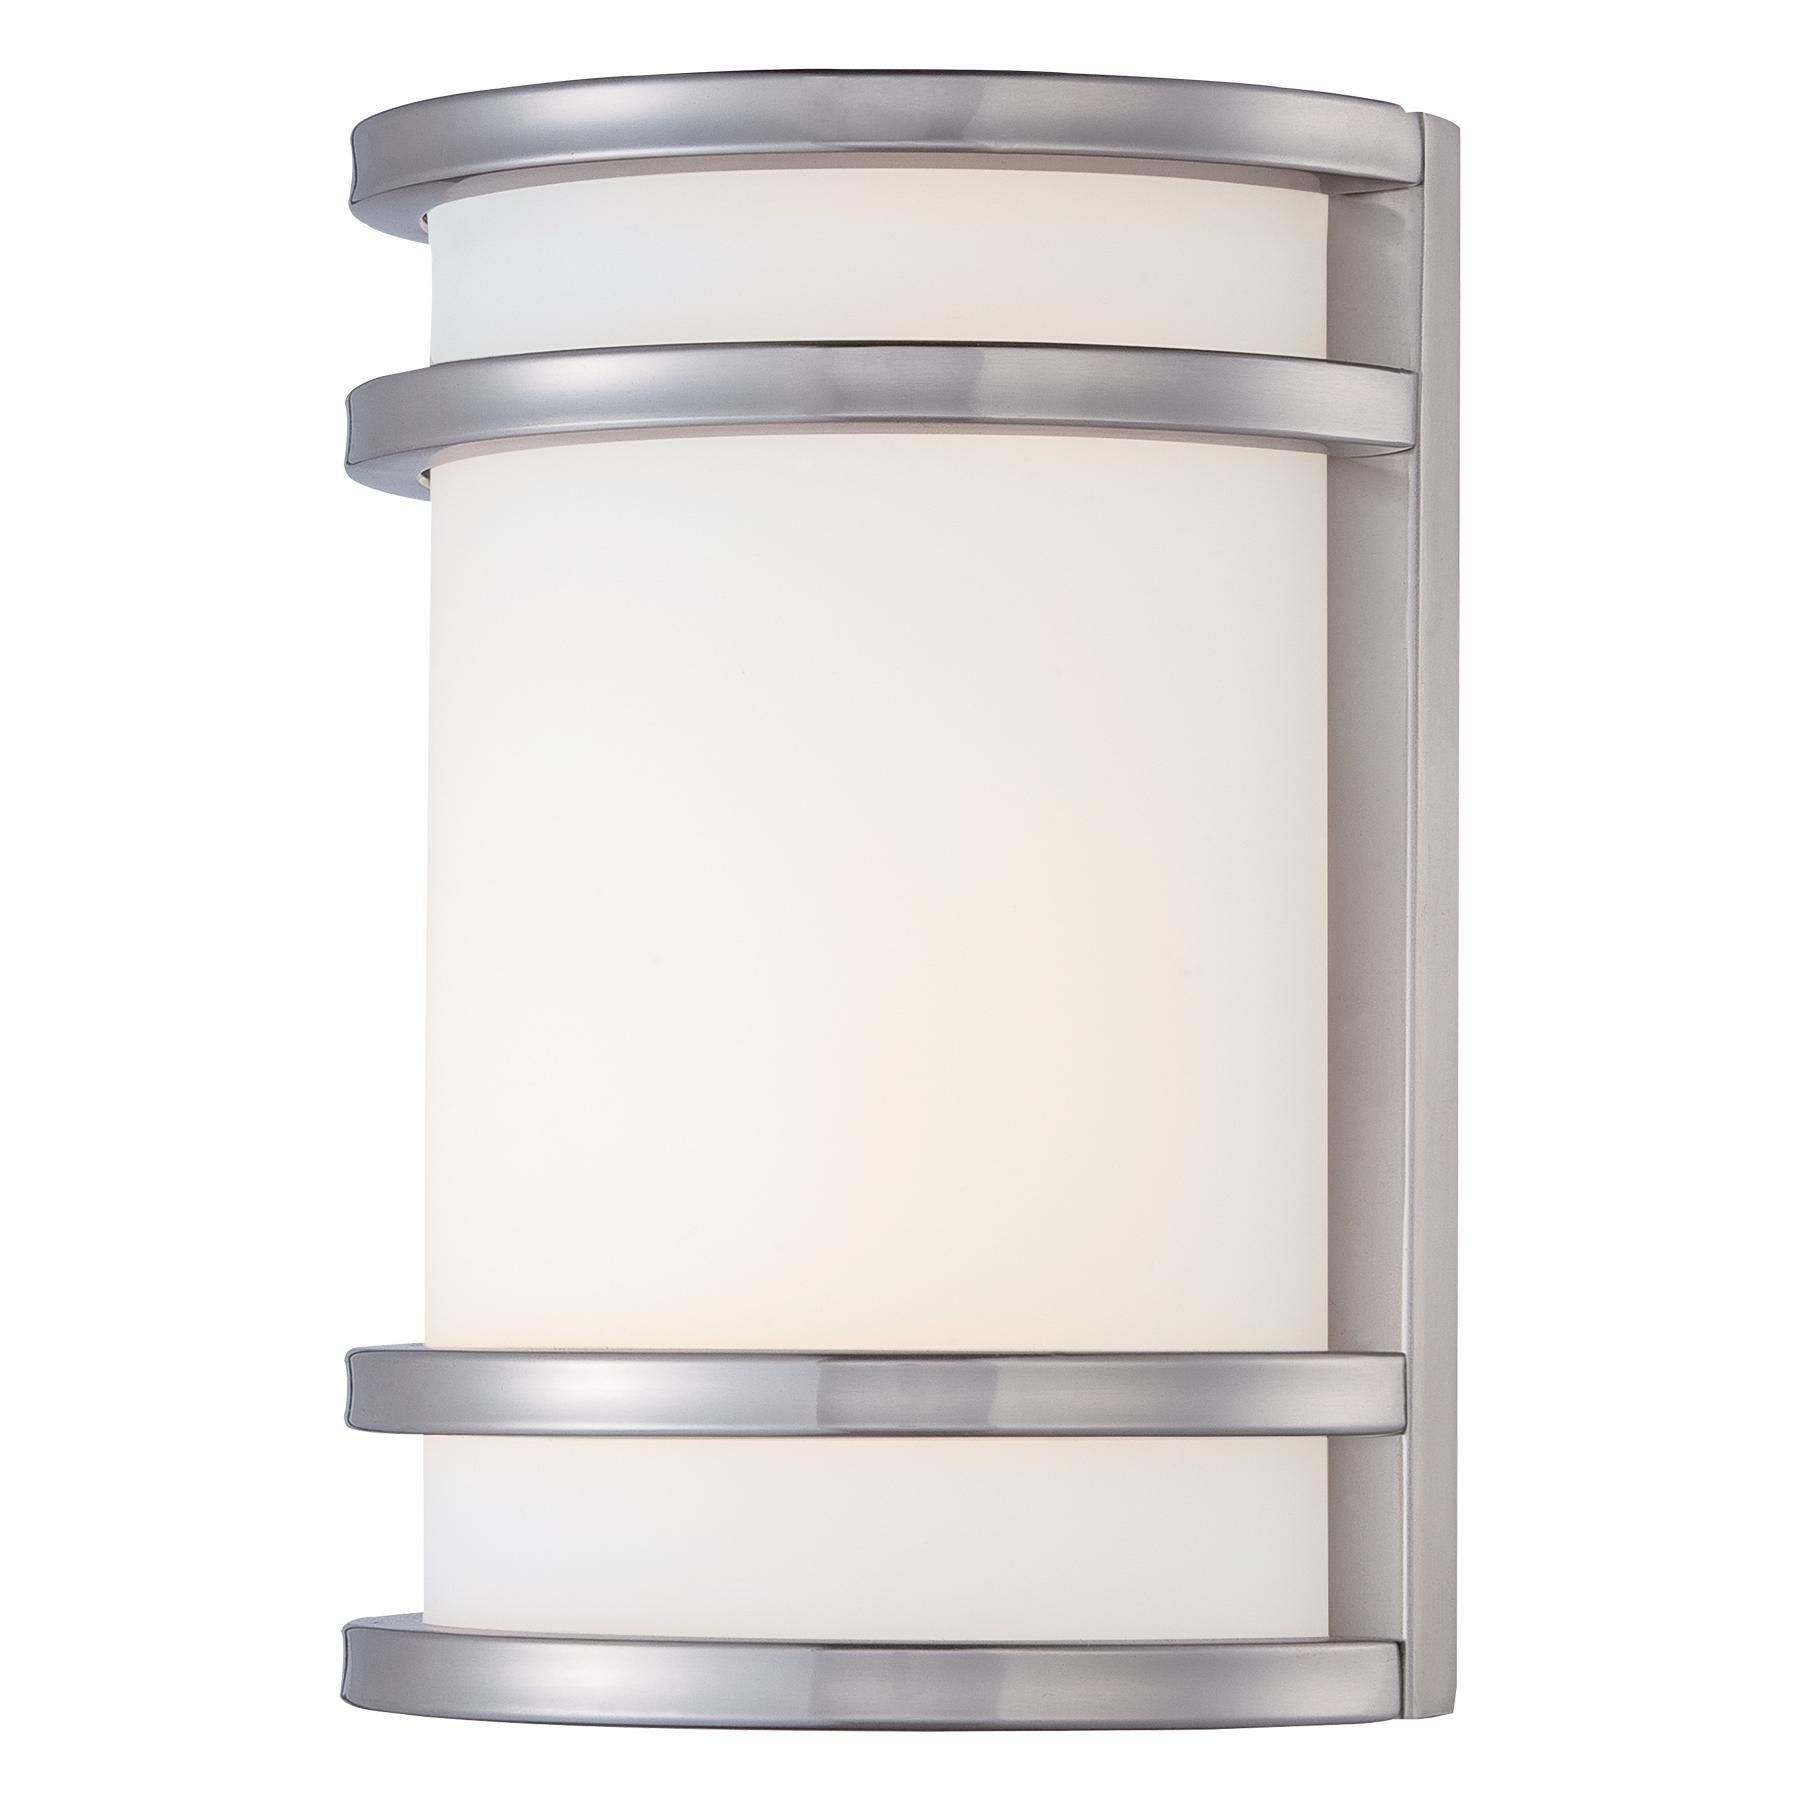 Minka Lavery Great Outdoor 9801 144 L Bay View Led Wall